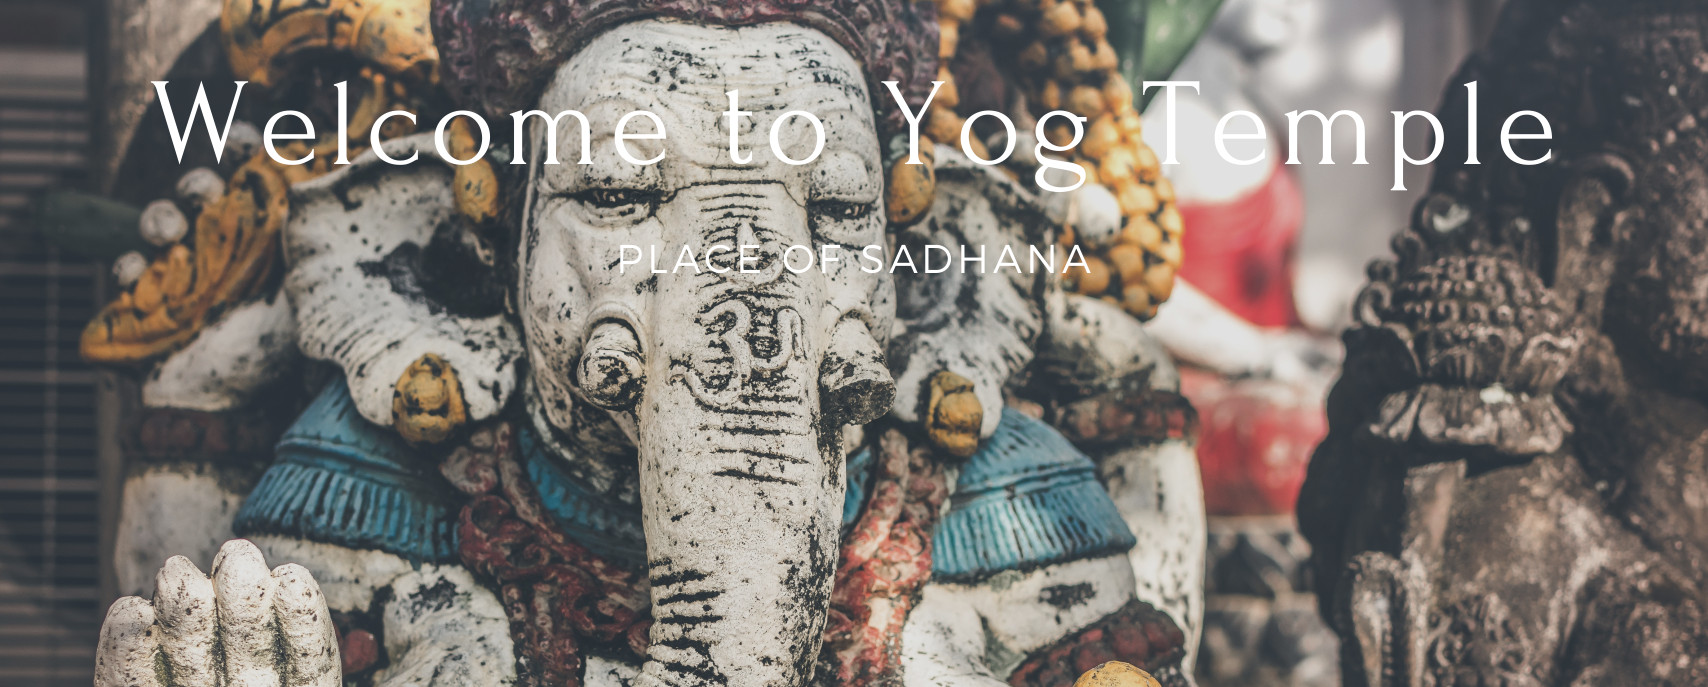 Yog Temple, Yoga Teacher Training in Austria, Yoga in Austria